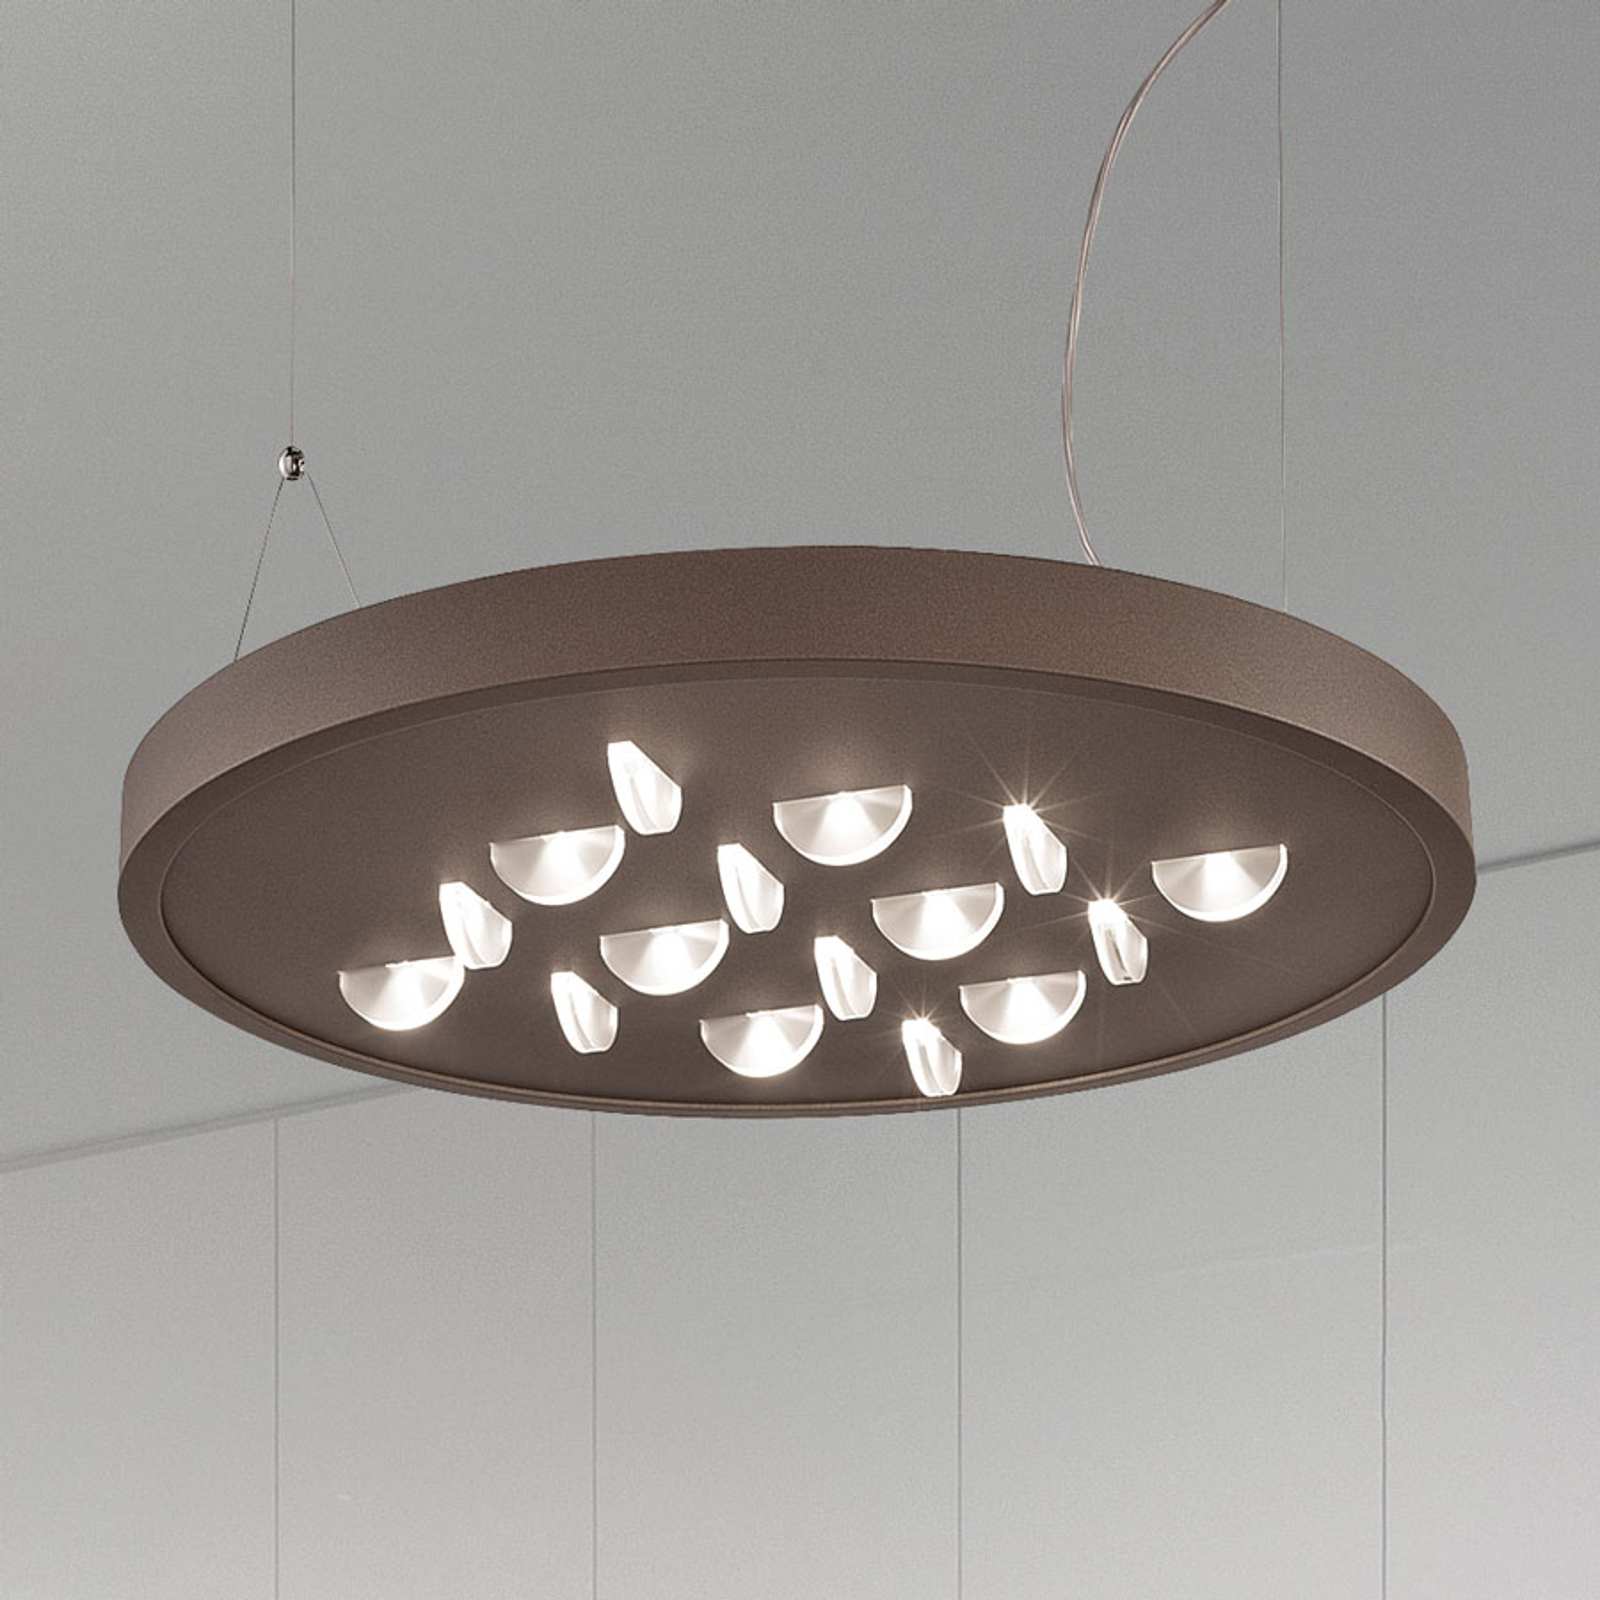 Élégante suspension LED Luno en brun rouille